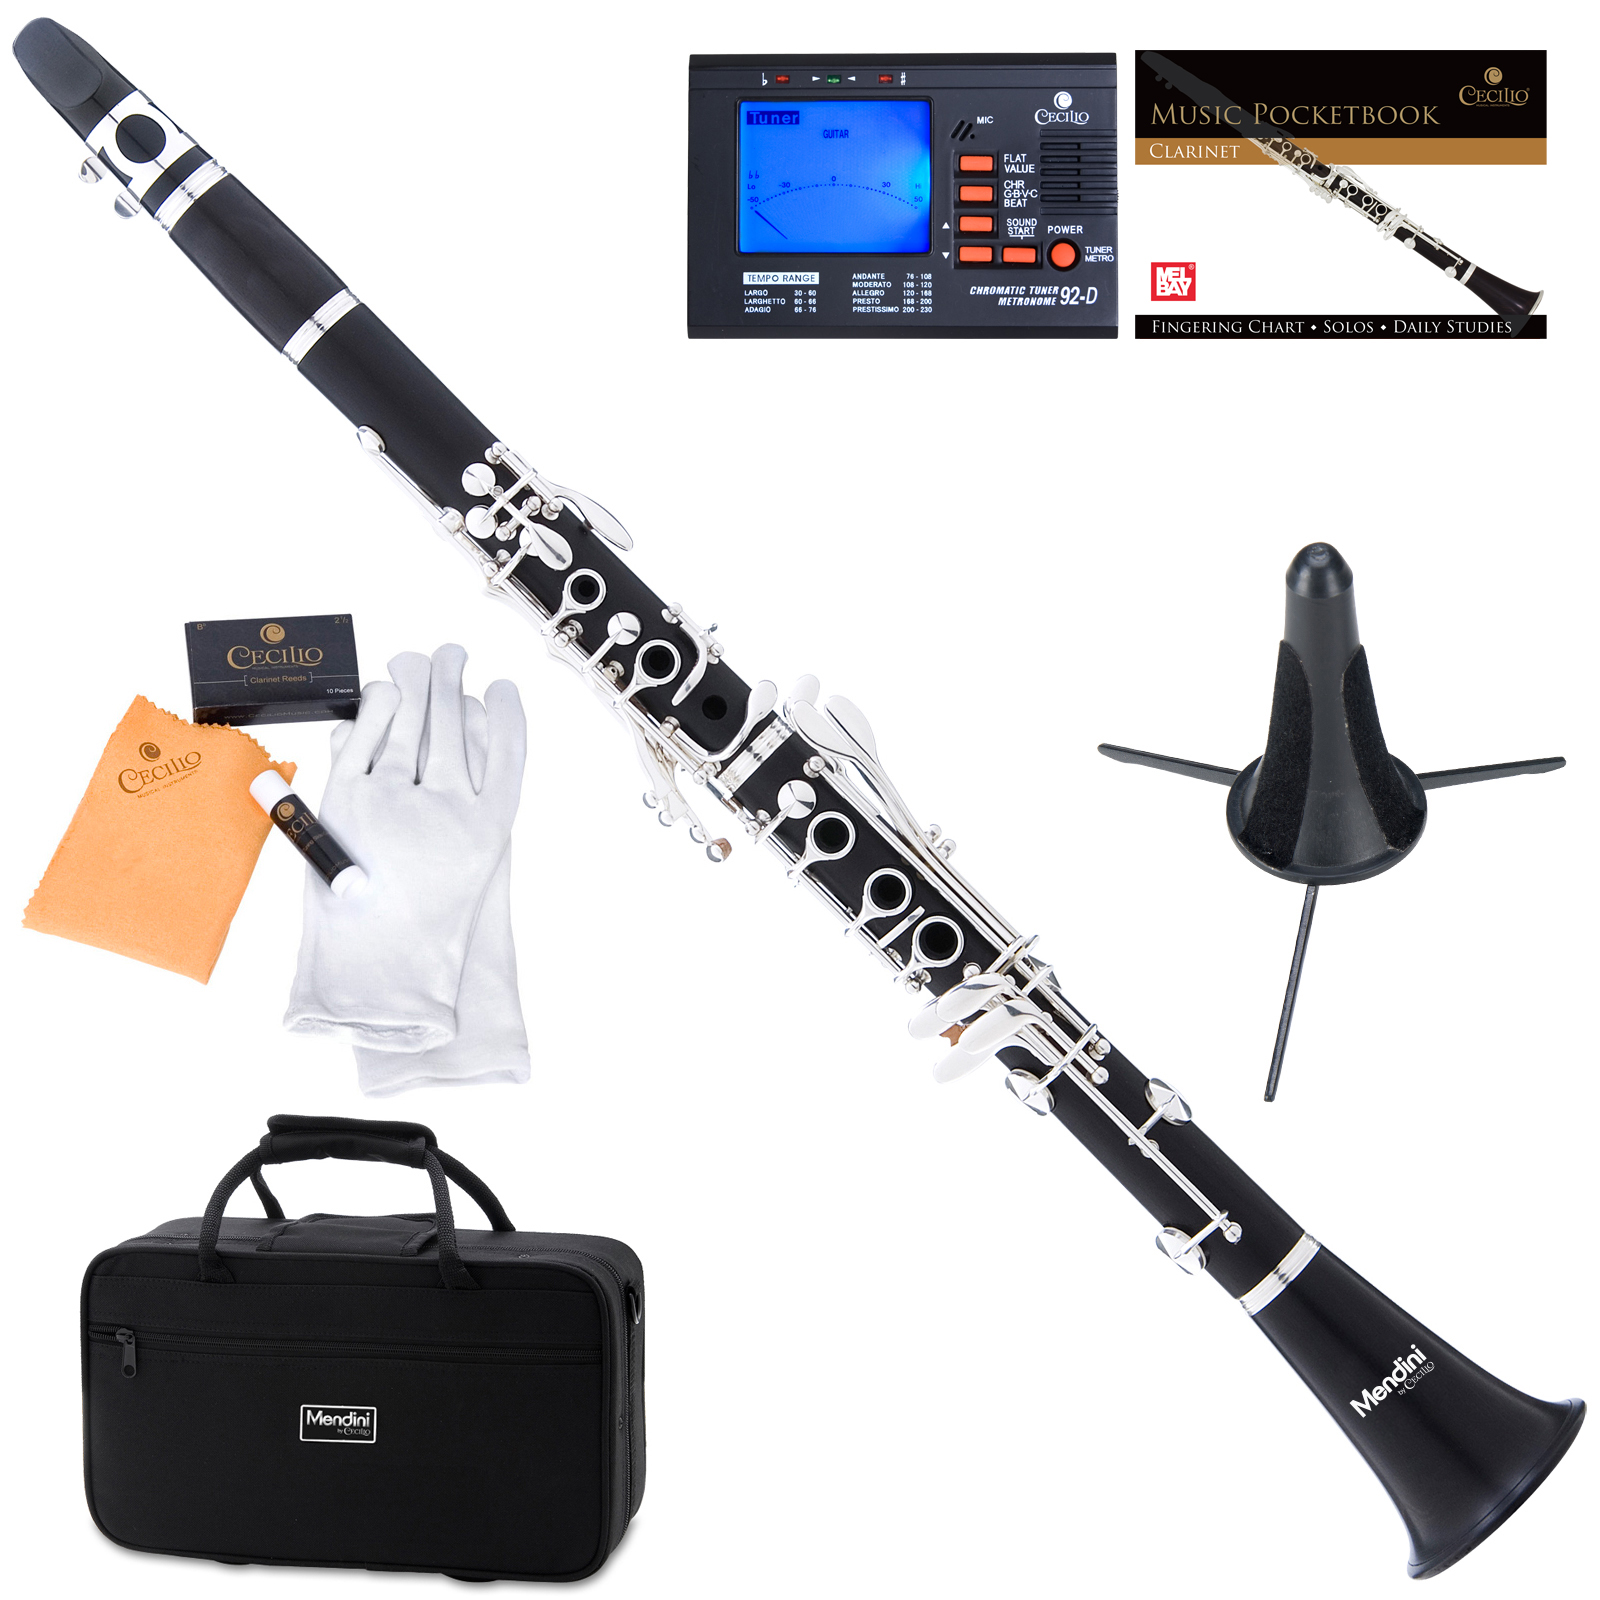 Mendini by Cecilio MCT-40 Ebony Wood Bb Clarinet w/Silver Plated Keys, Italian Pads, 1 Year Warranty, Stand, Tuner, 10 Reeds, Pocketbook, Mouthpiece, Case, B Flat